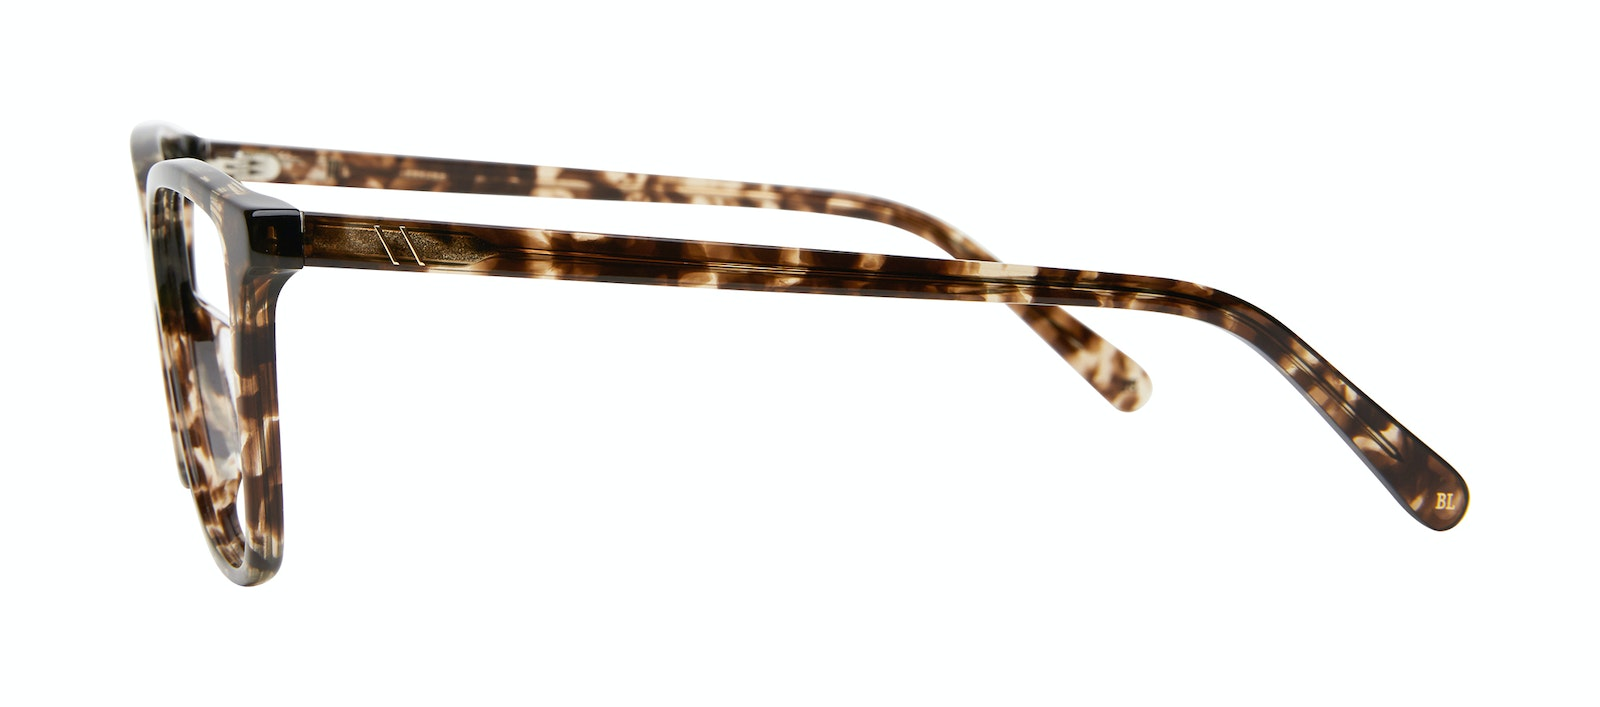 Affordable Fashion Glasses Cat Eye Eyeglasses Women Tailor XL Leopard Side